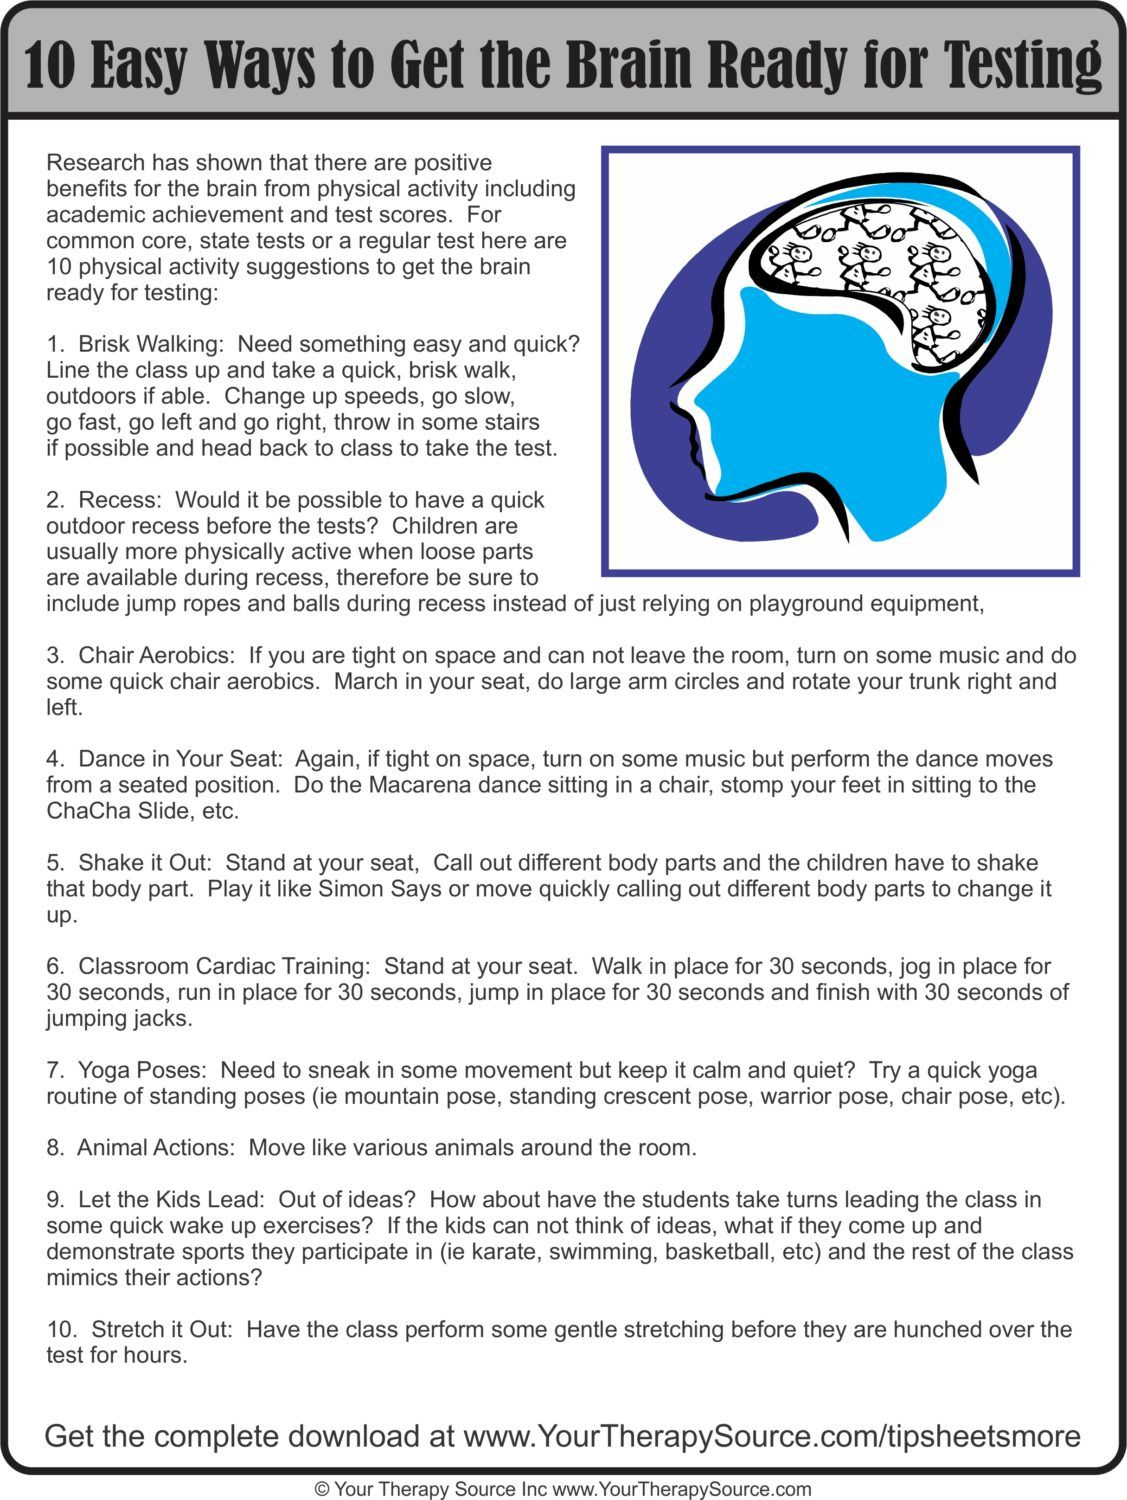 10 Ways to Get the Brain Ready for Improved Memory and Concentration. Worth reading the article attached. Good links follow.